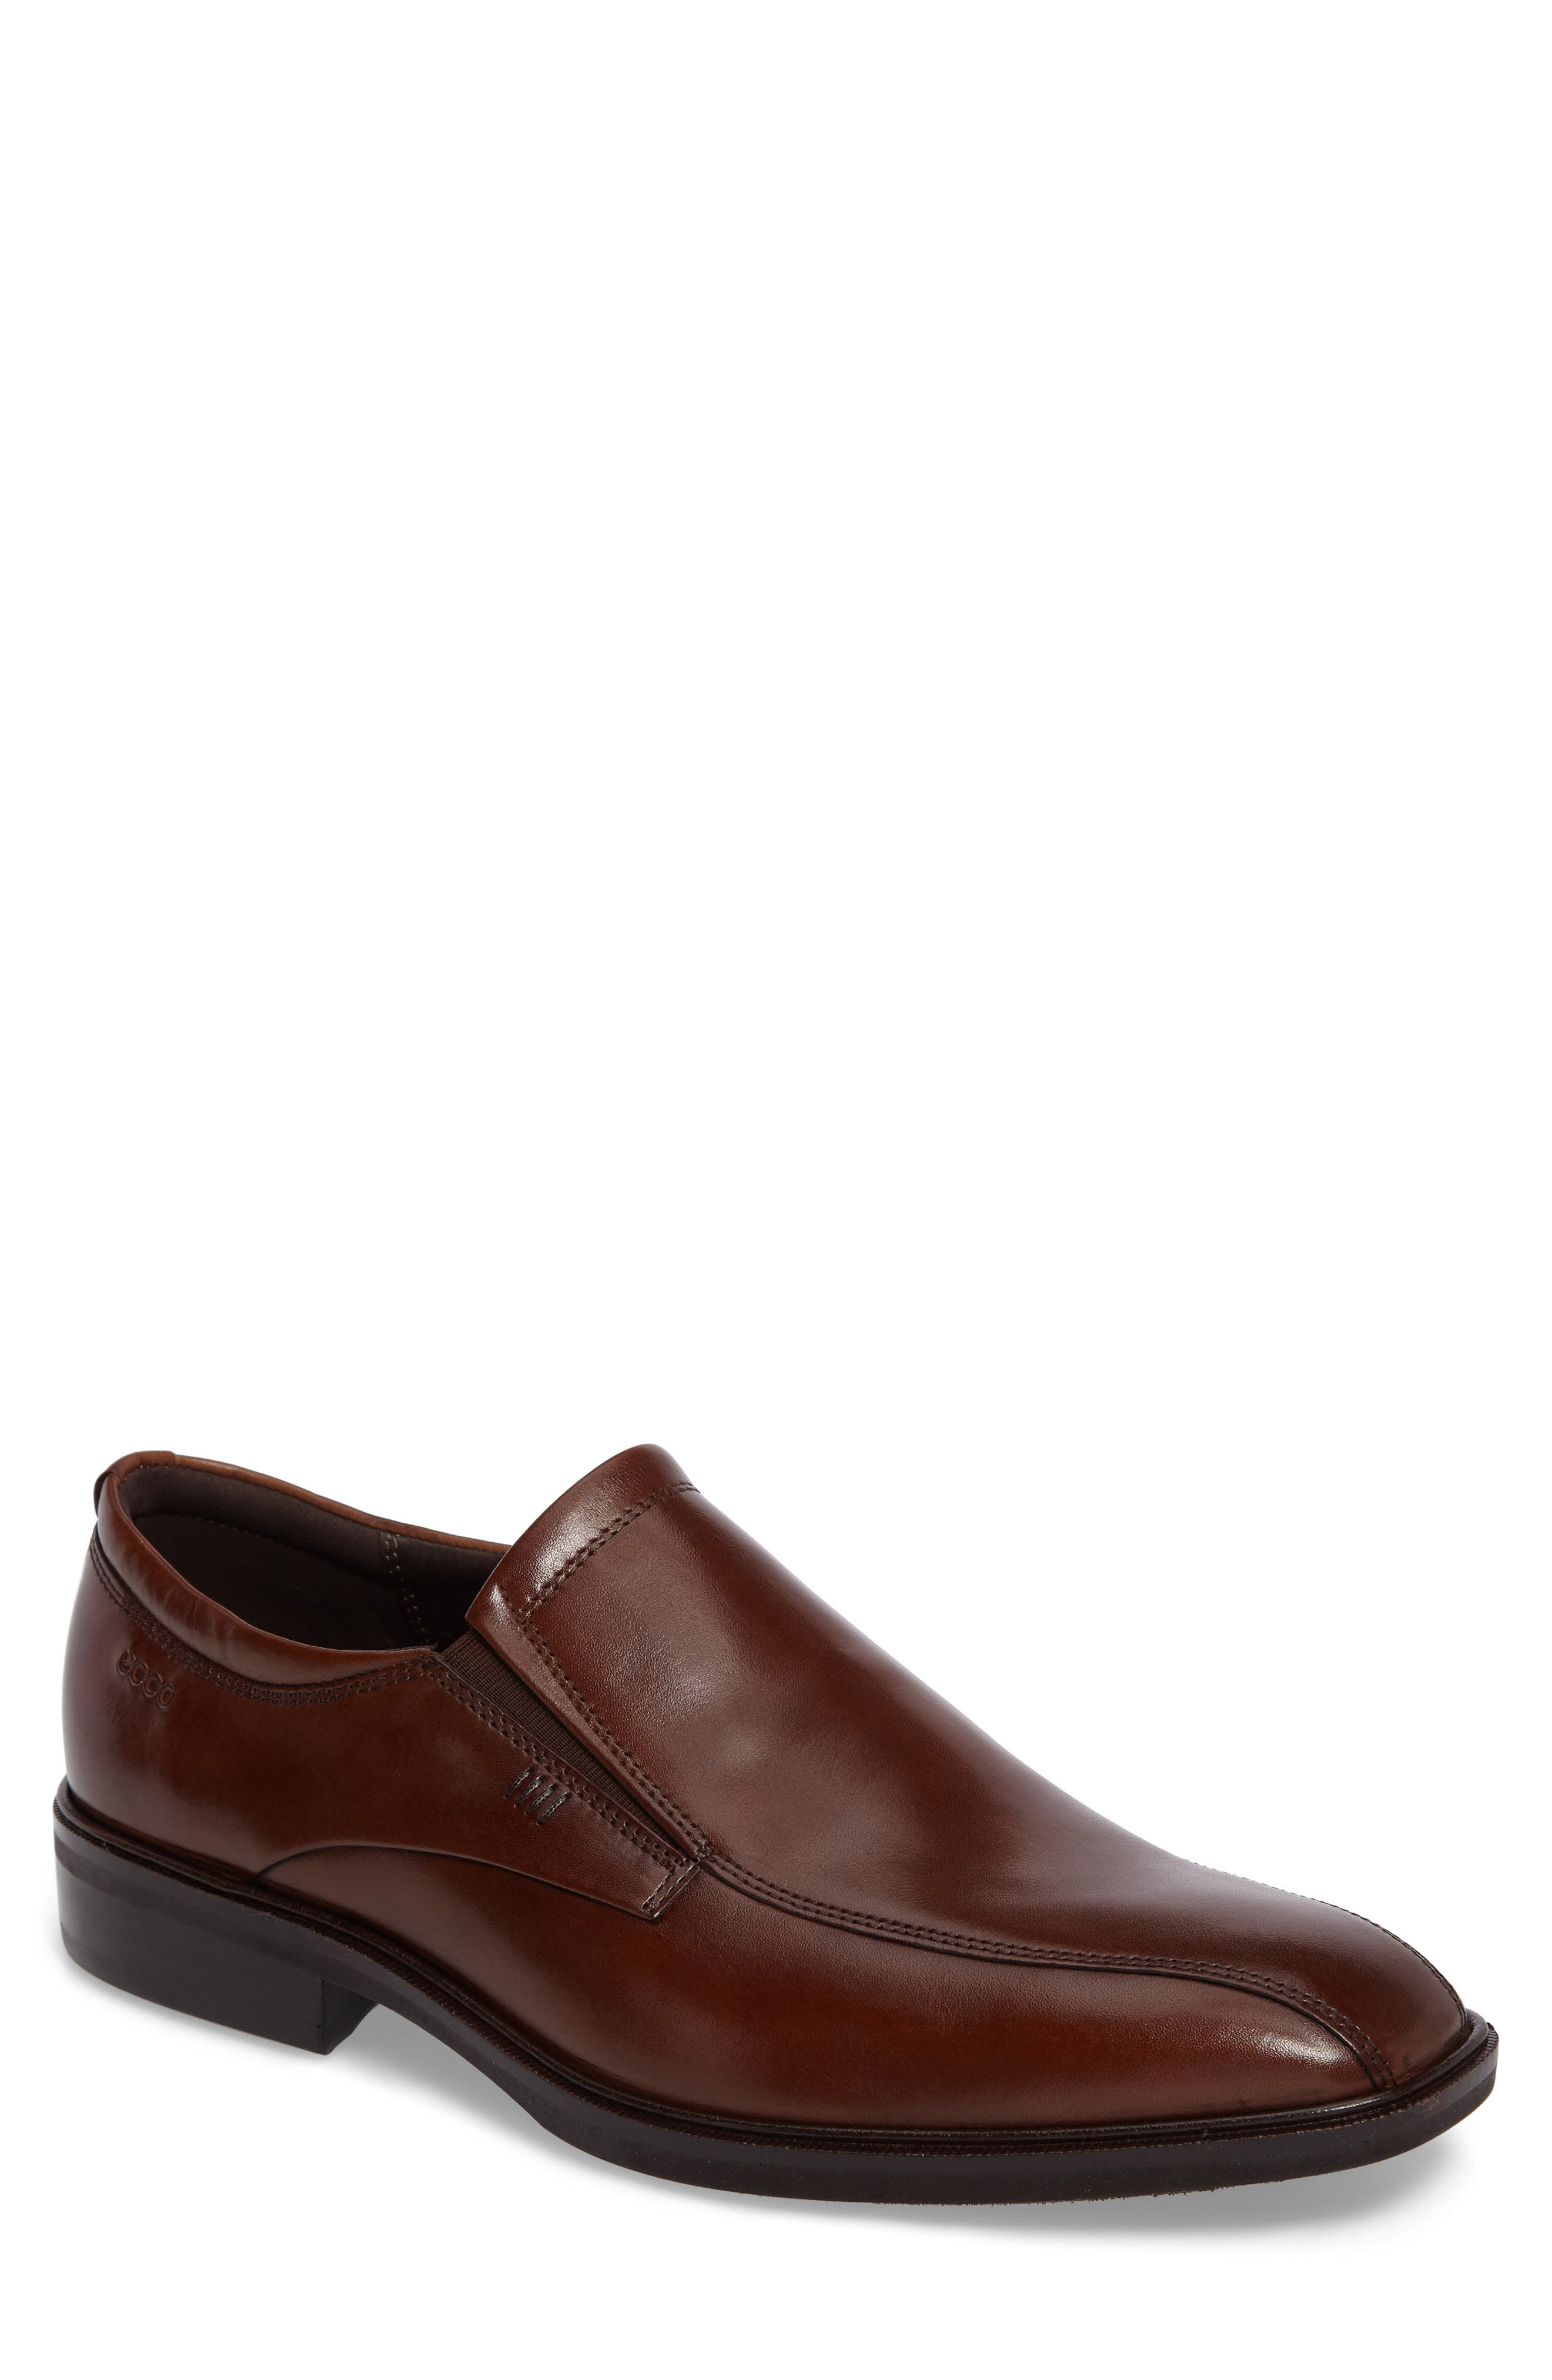 'Illinois' Loafer,                         Main,                         color, WALNUT LEATHER